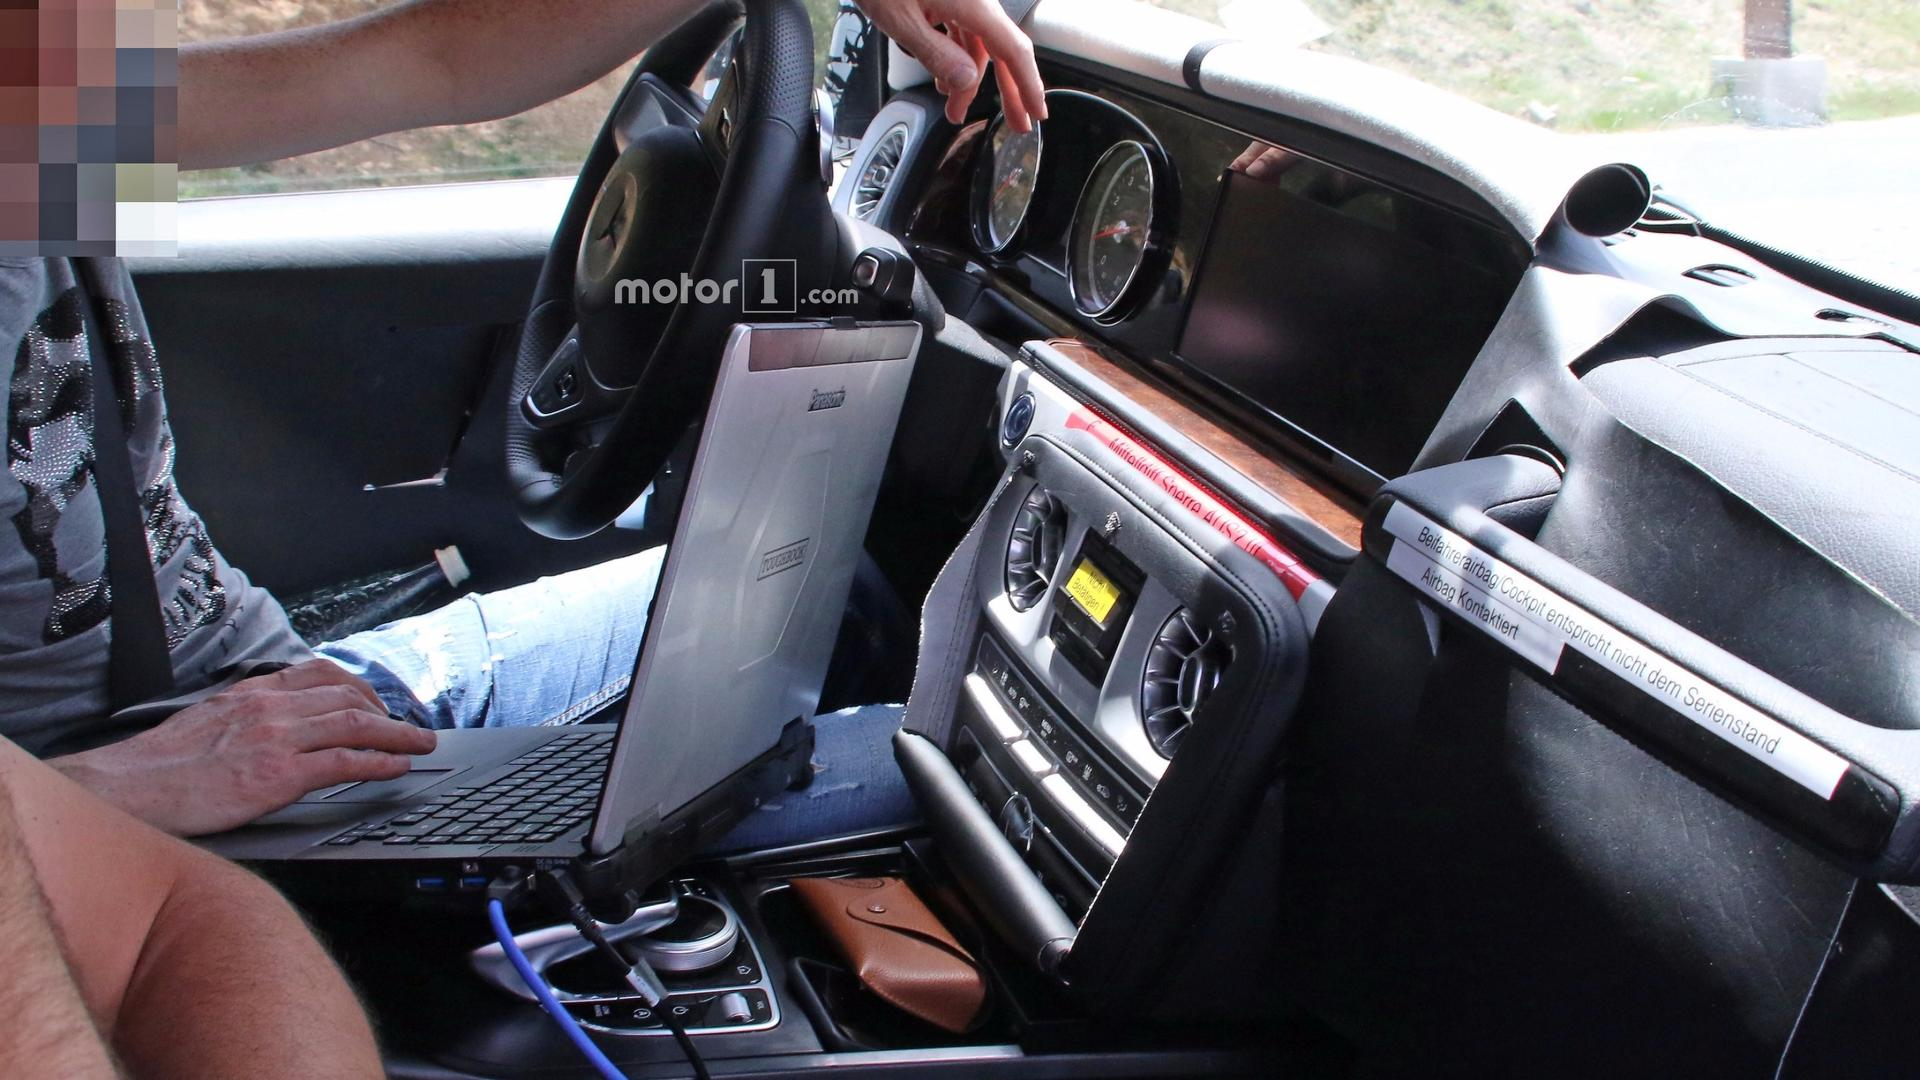 2019 mercedes amg g63 caught off guard showing interior for Mercedes a klasse amg interieur